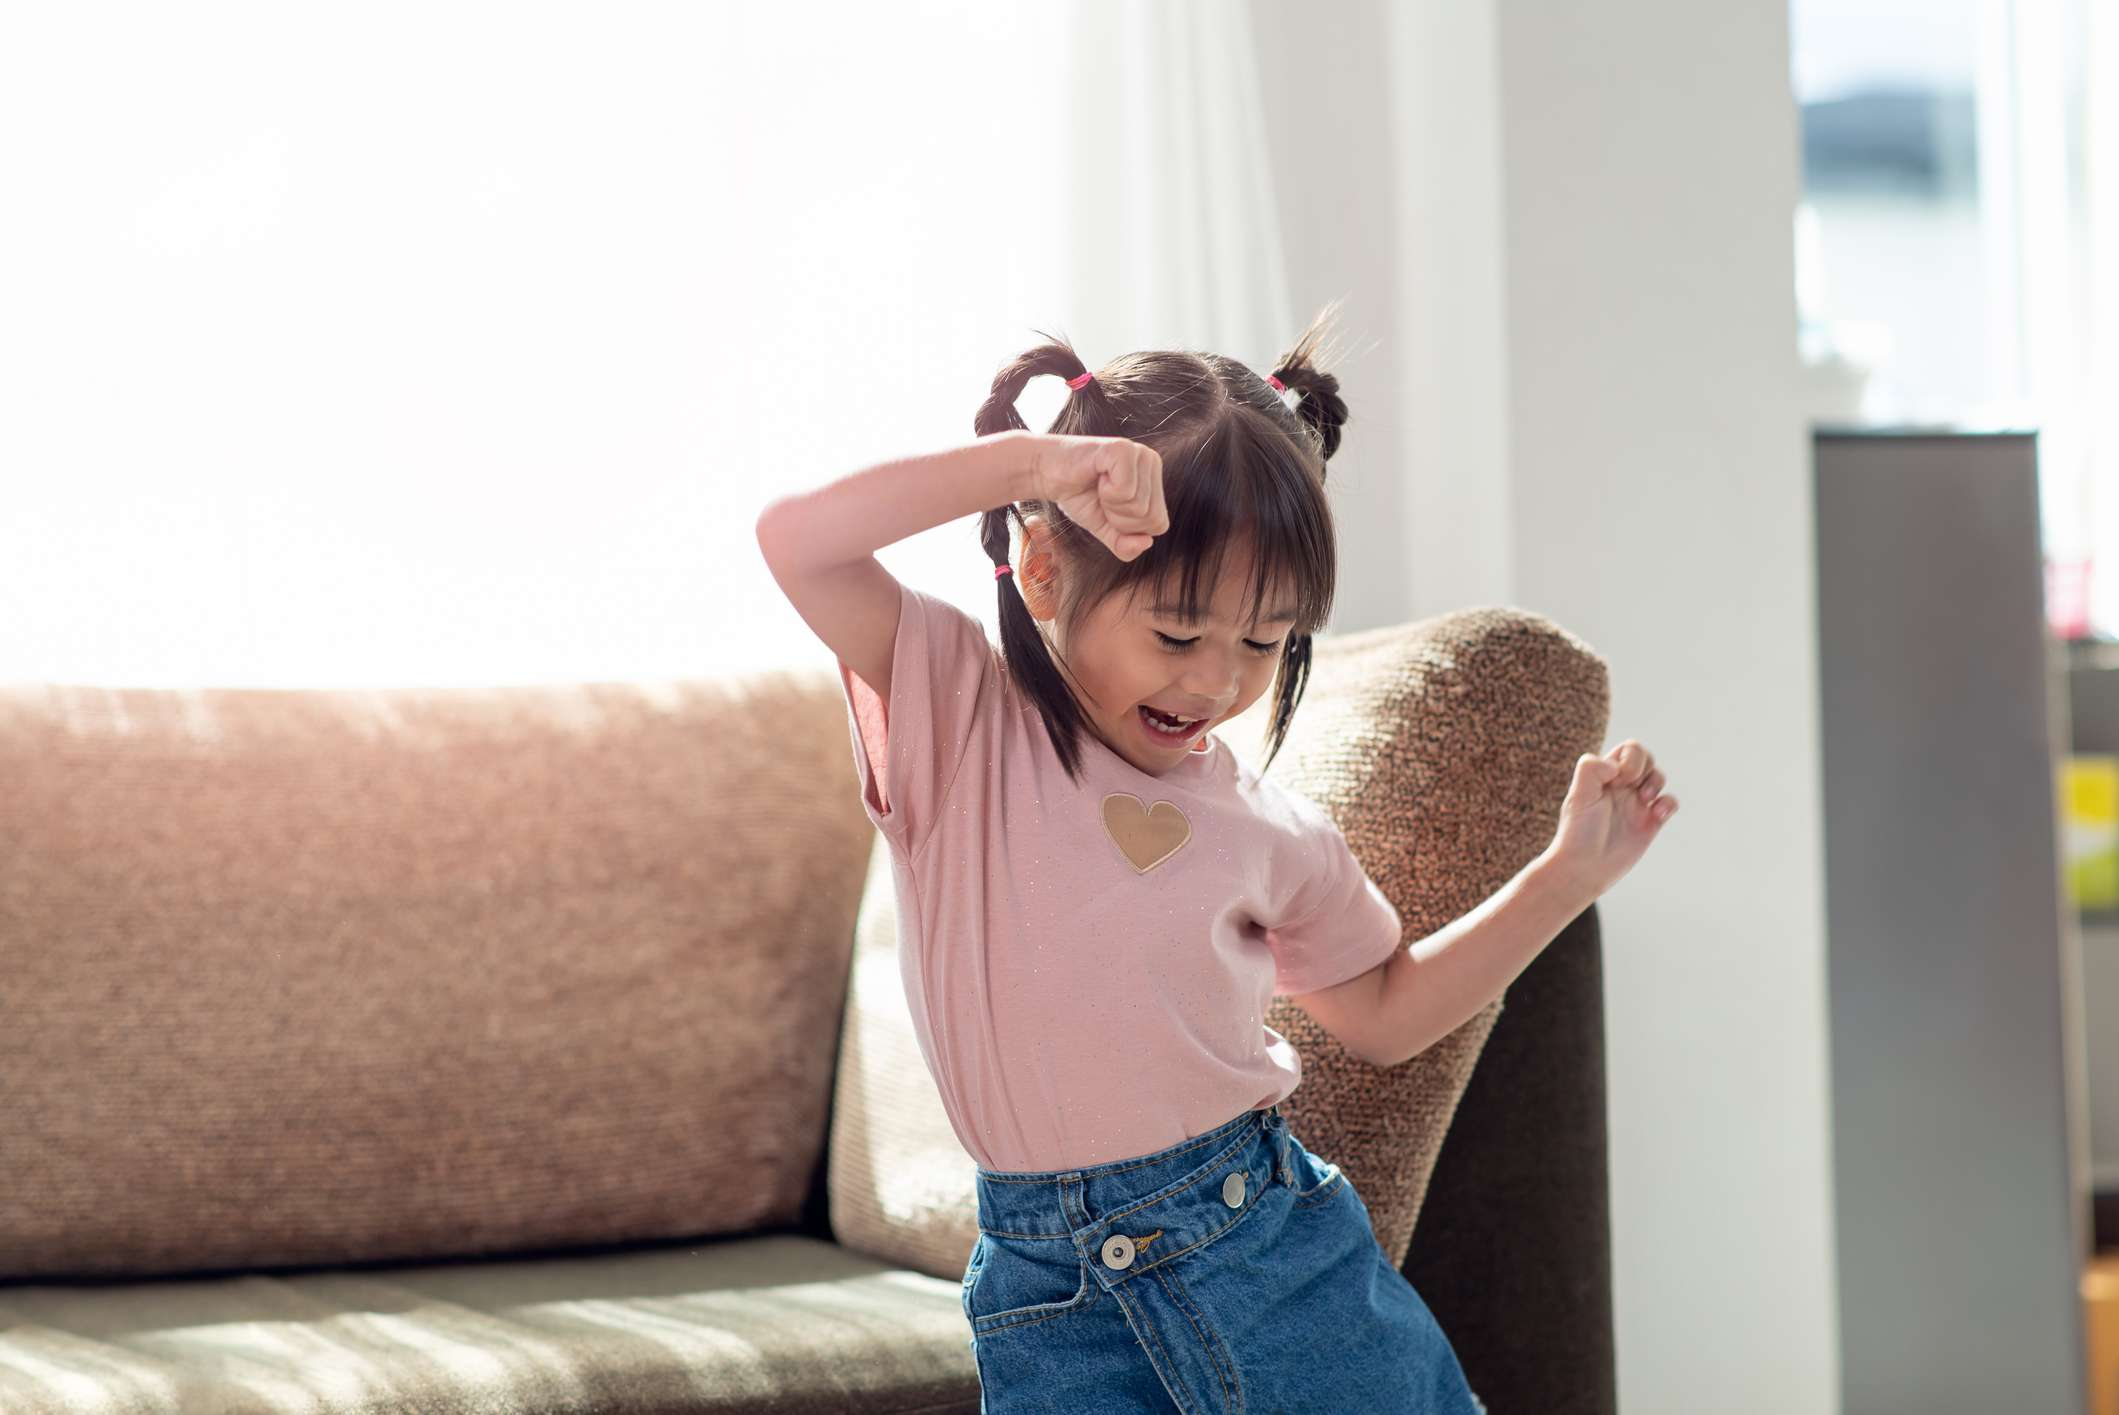 Young child having fun and dancing